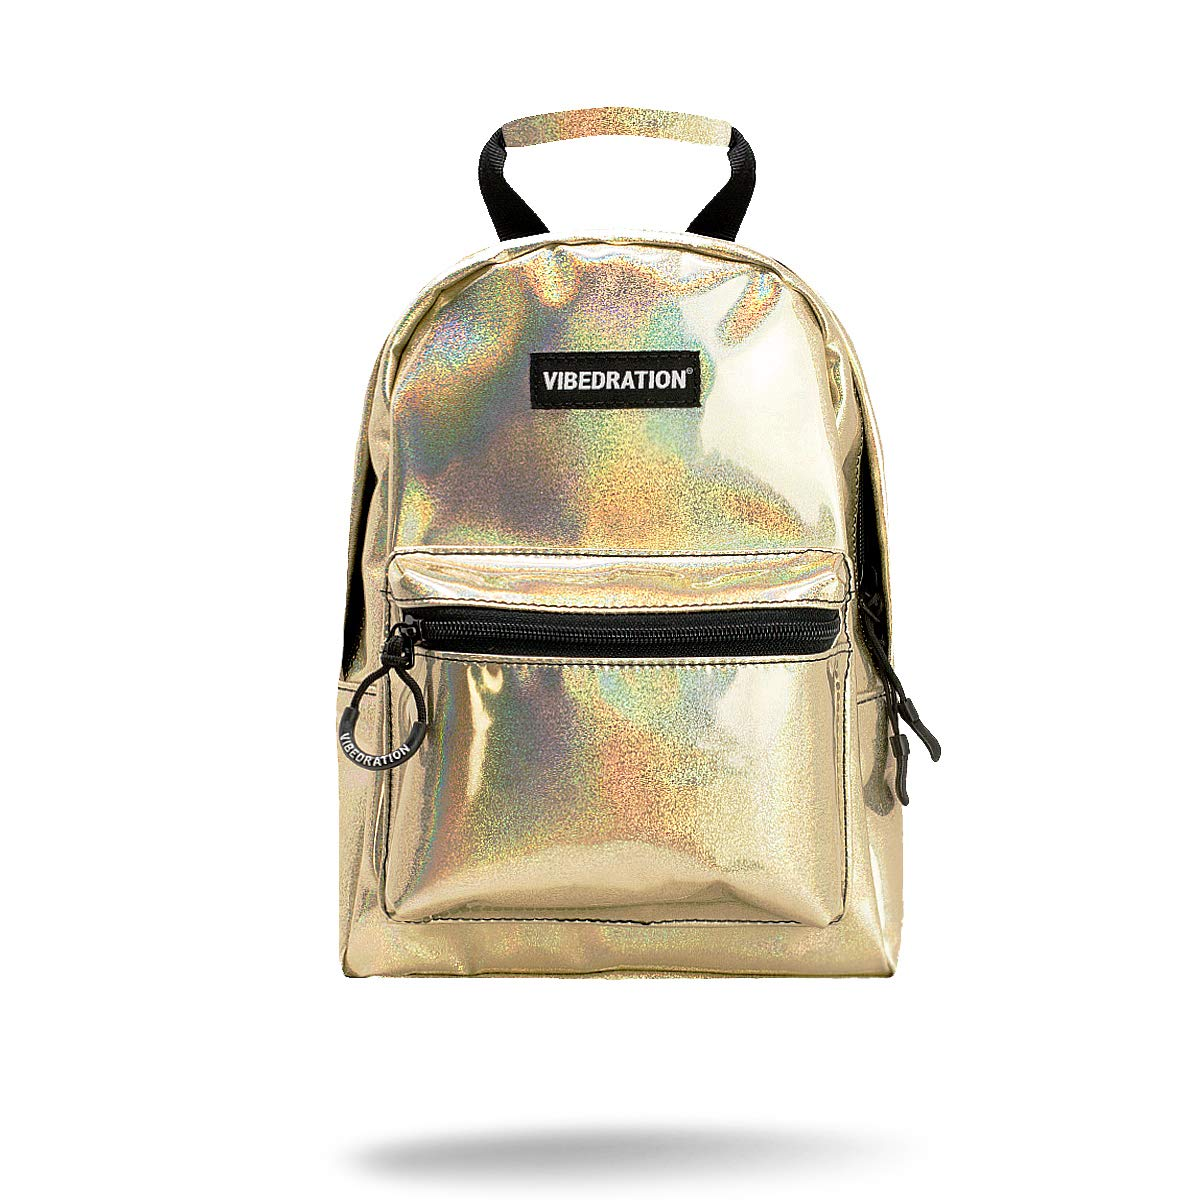 Vibedration Mini Hydration Backpack Festival Clothing Accessory Bag 1 Liter Rave Water Pack